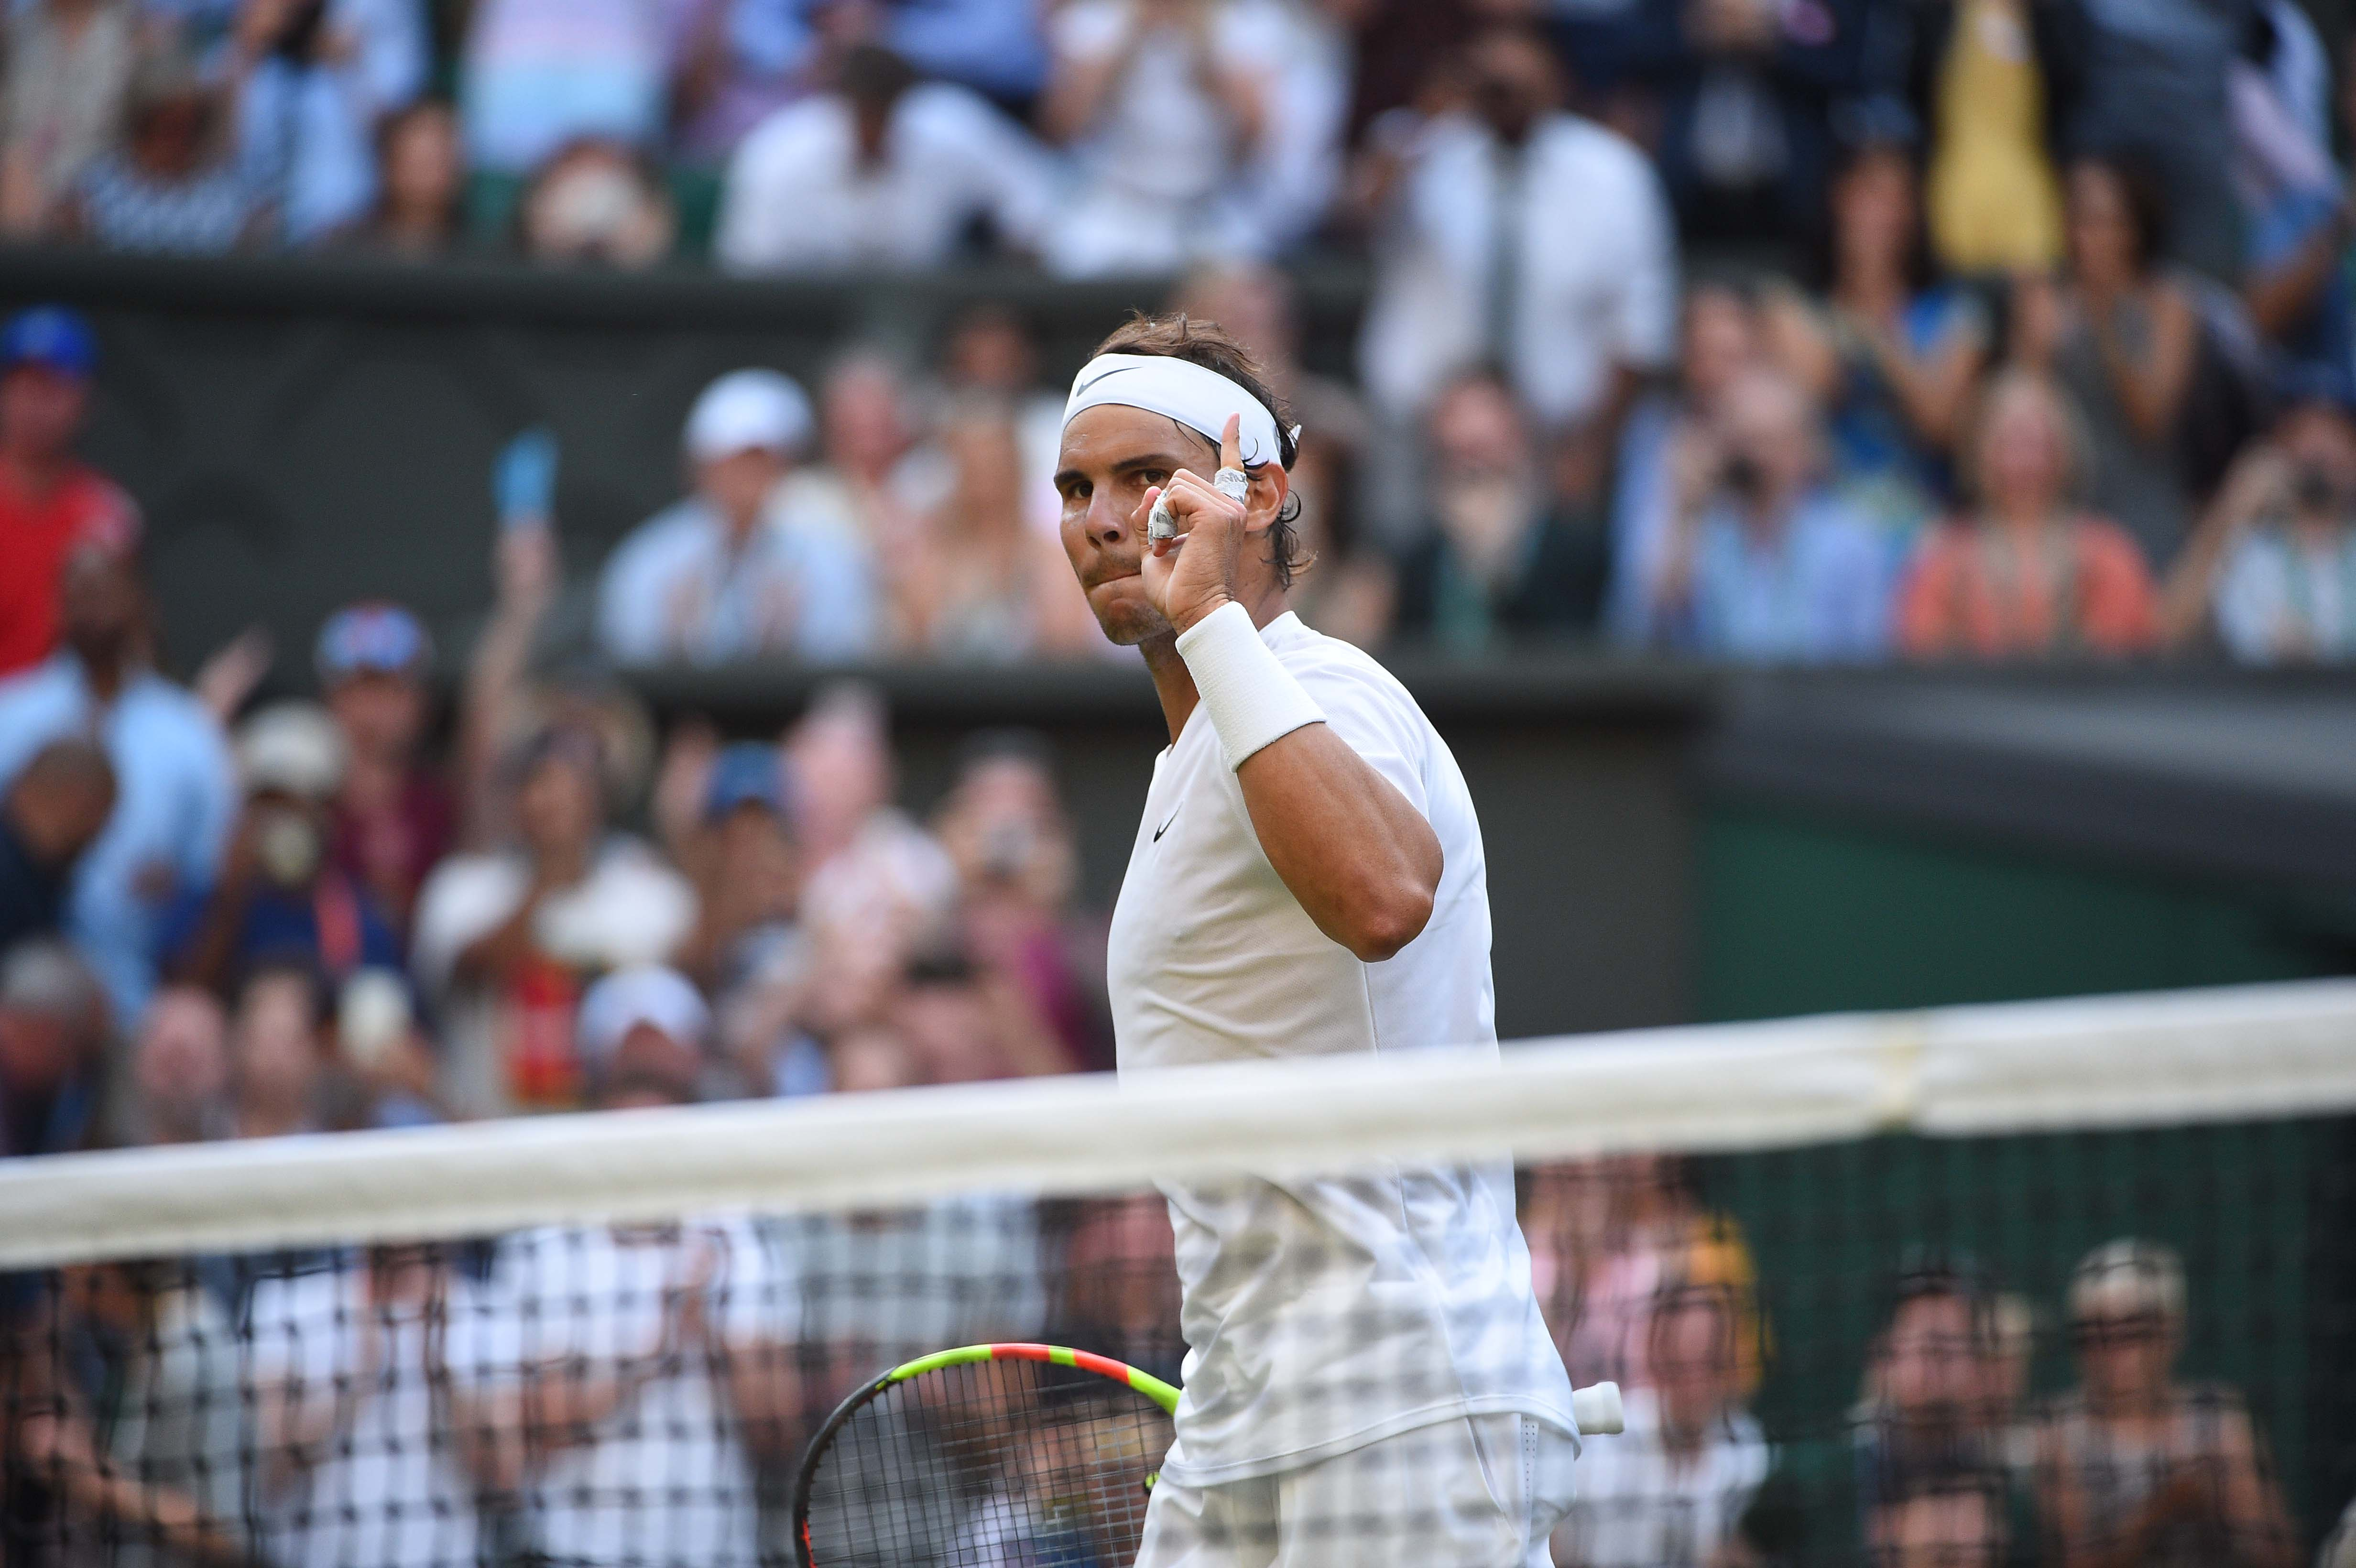 Rafael Nadal happy and relieved after winning against Nick Kyrgios at Wimbledon 2019